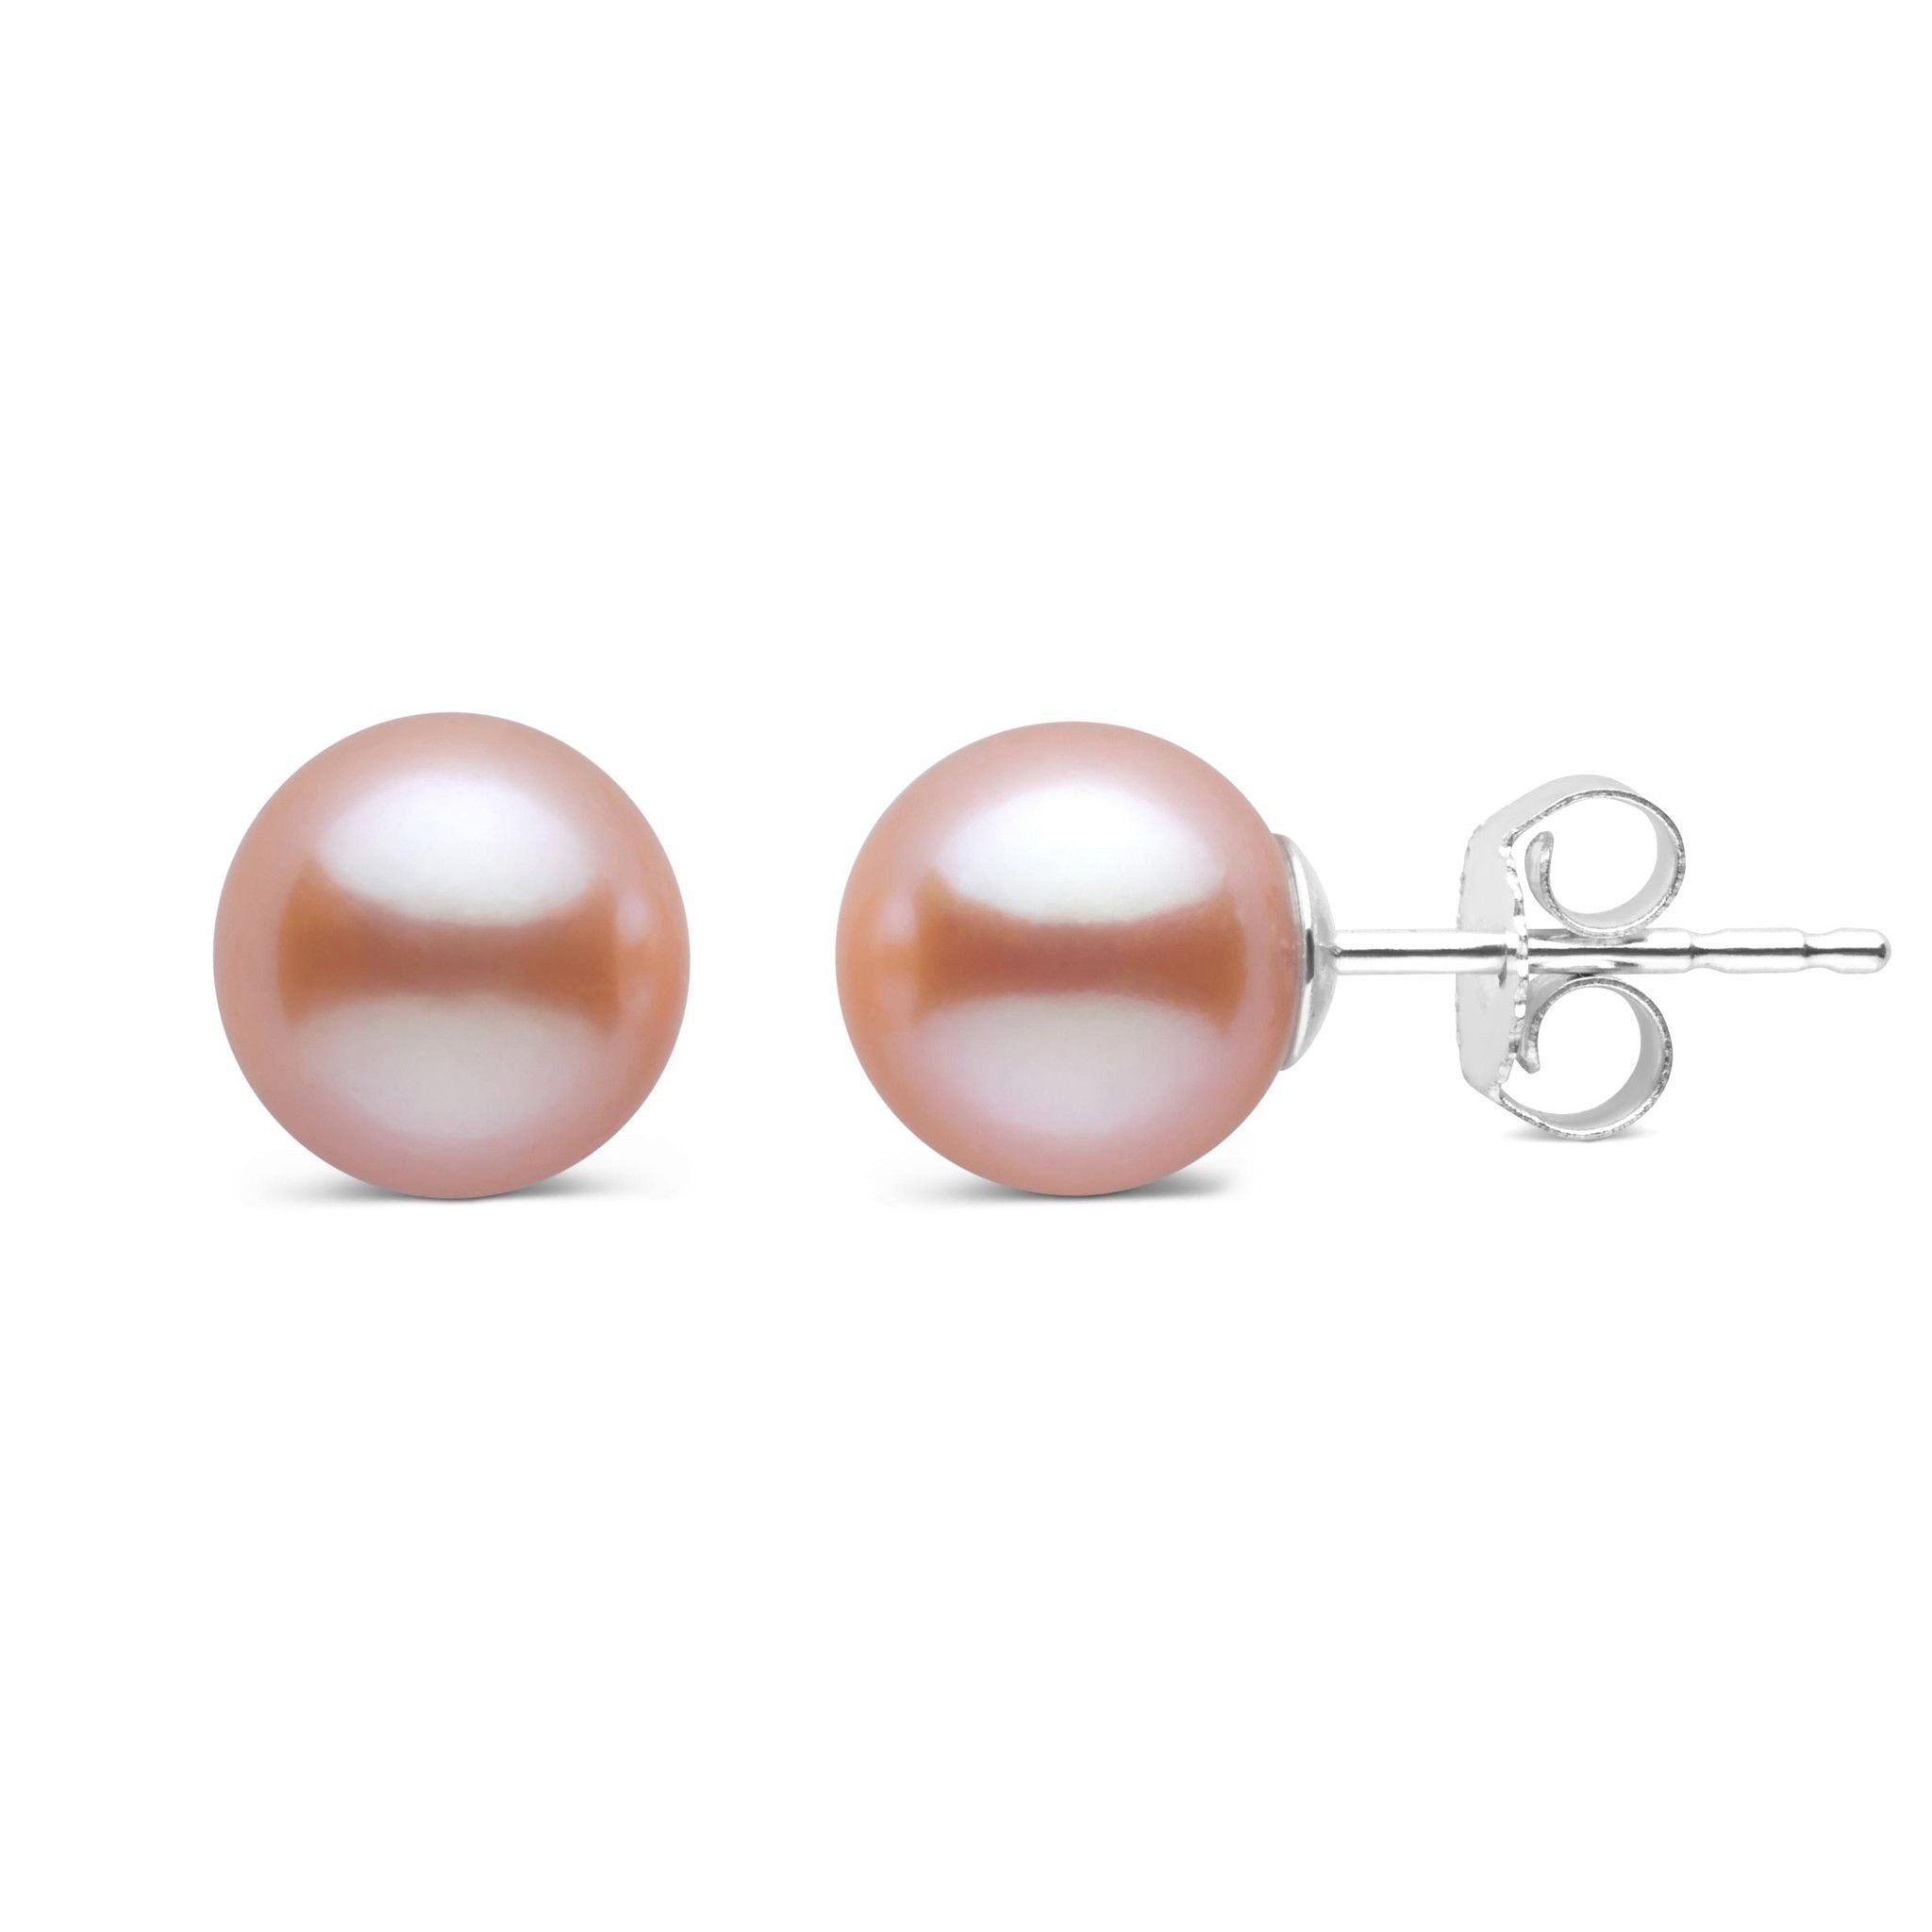 7.5-8.0 mm AAA Pink to Peach Freshwater Pearl Stud Earrings